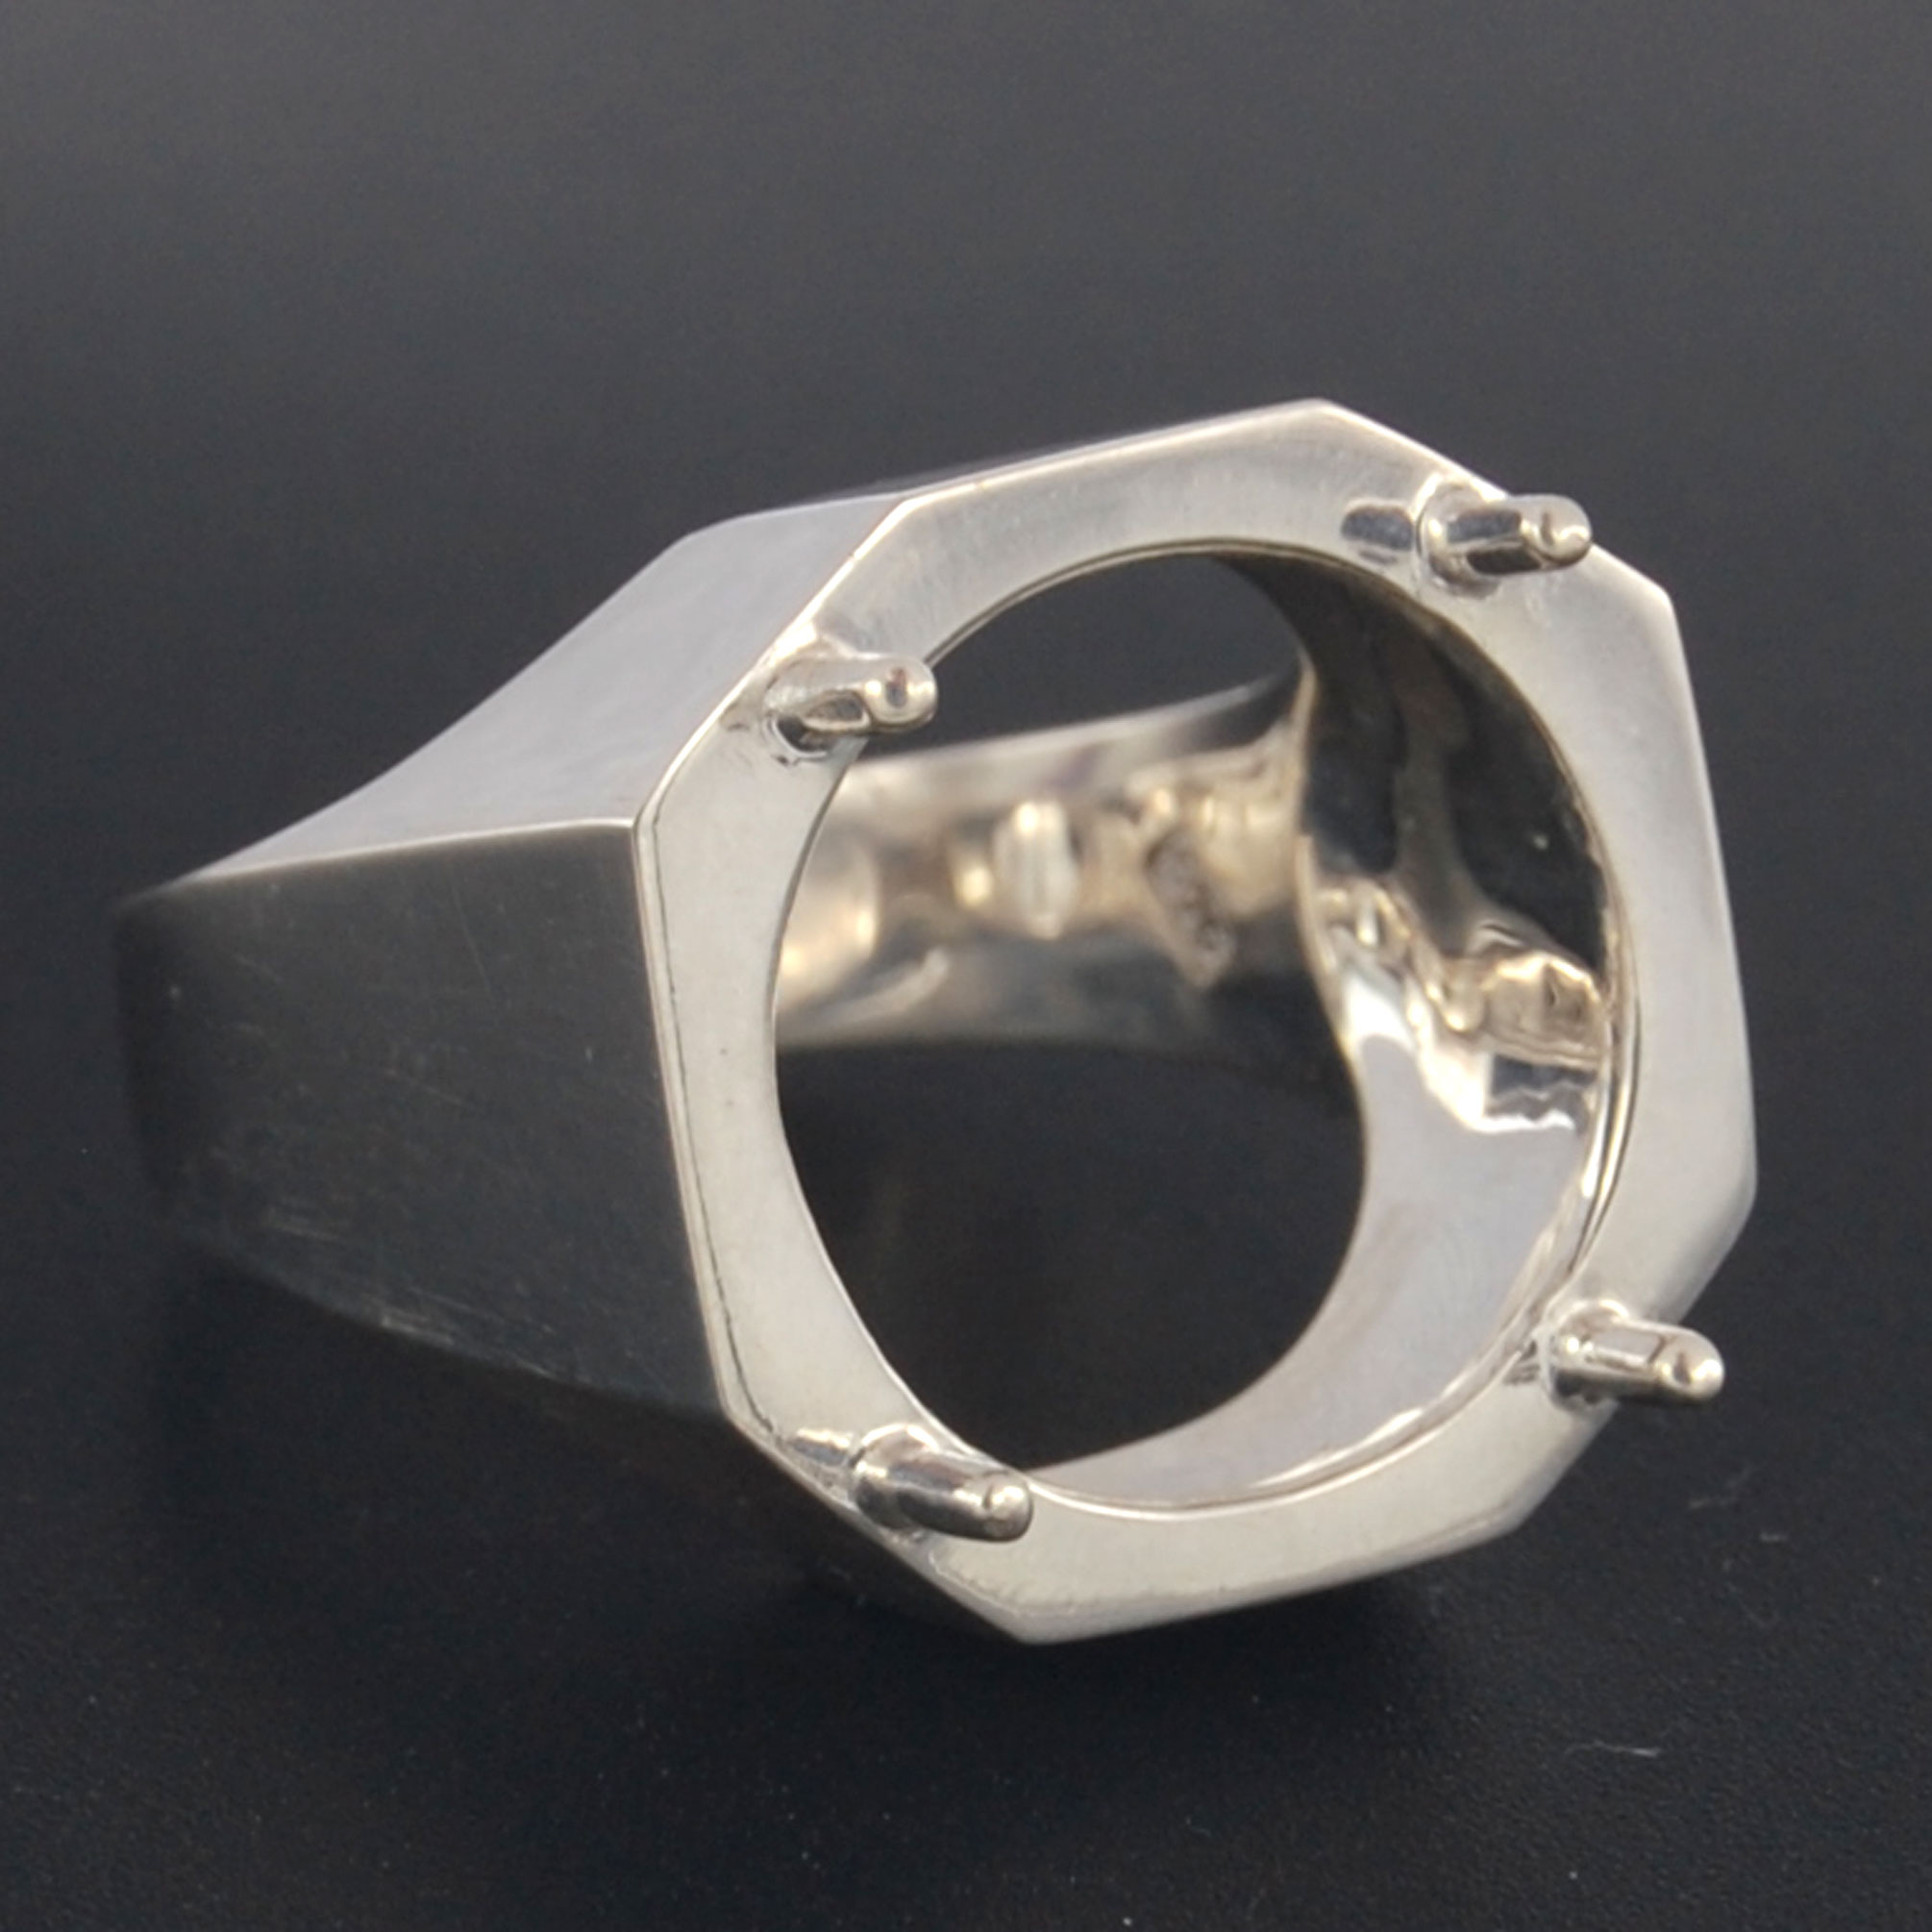 Setting silver ring blank for round 15 mm